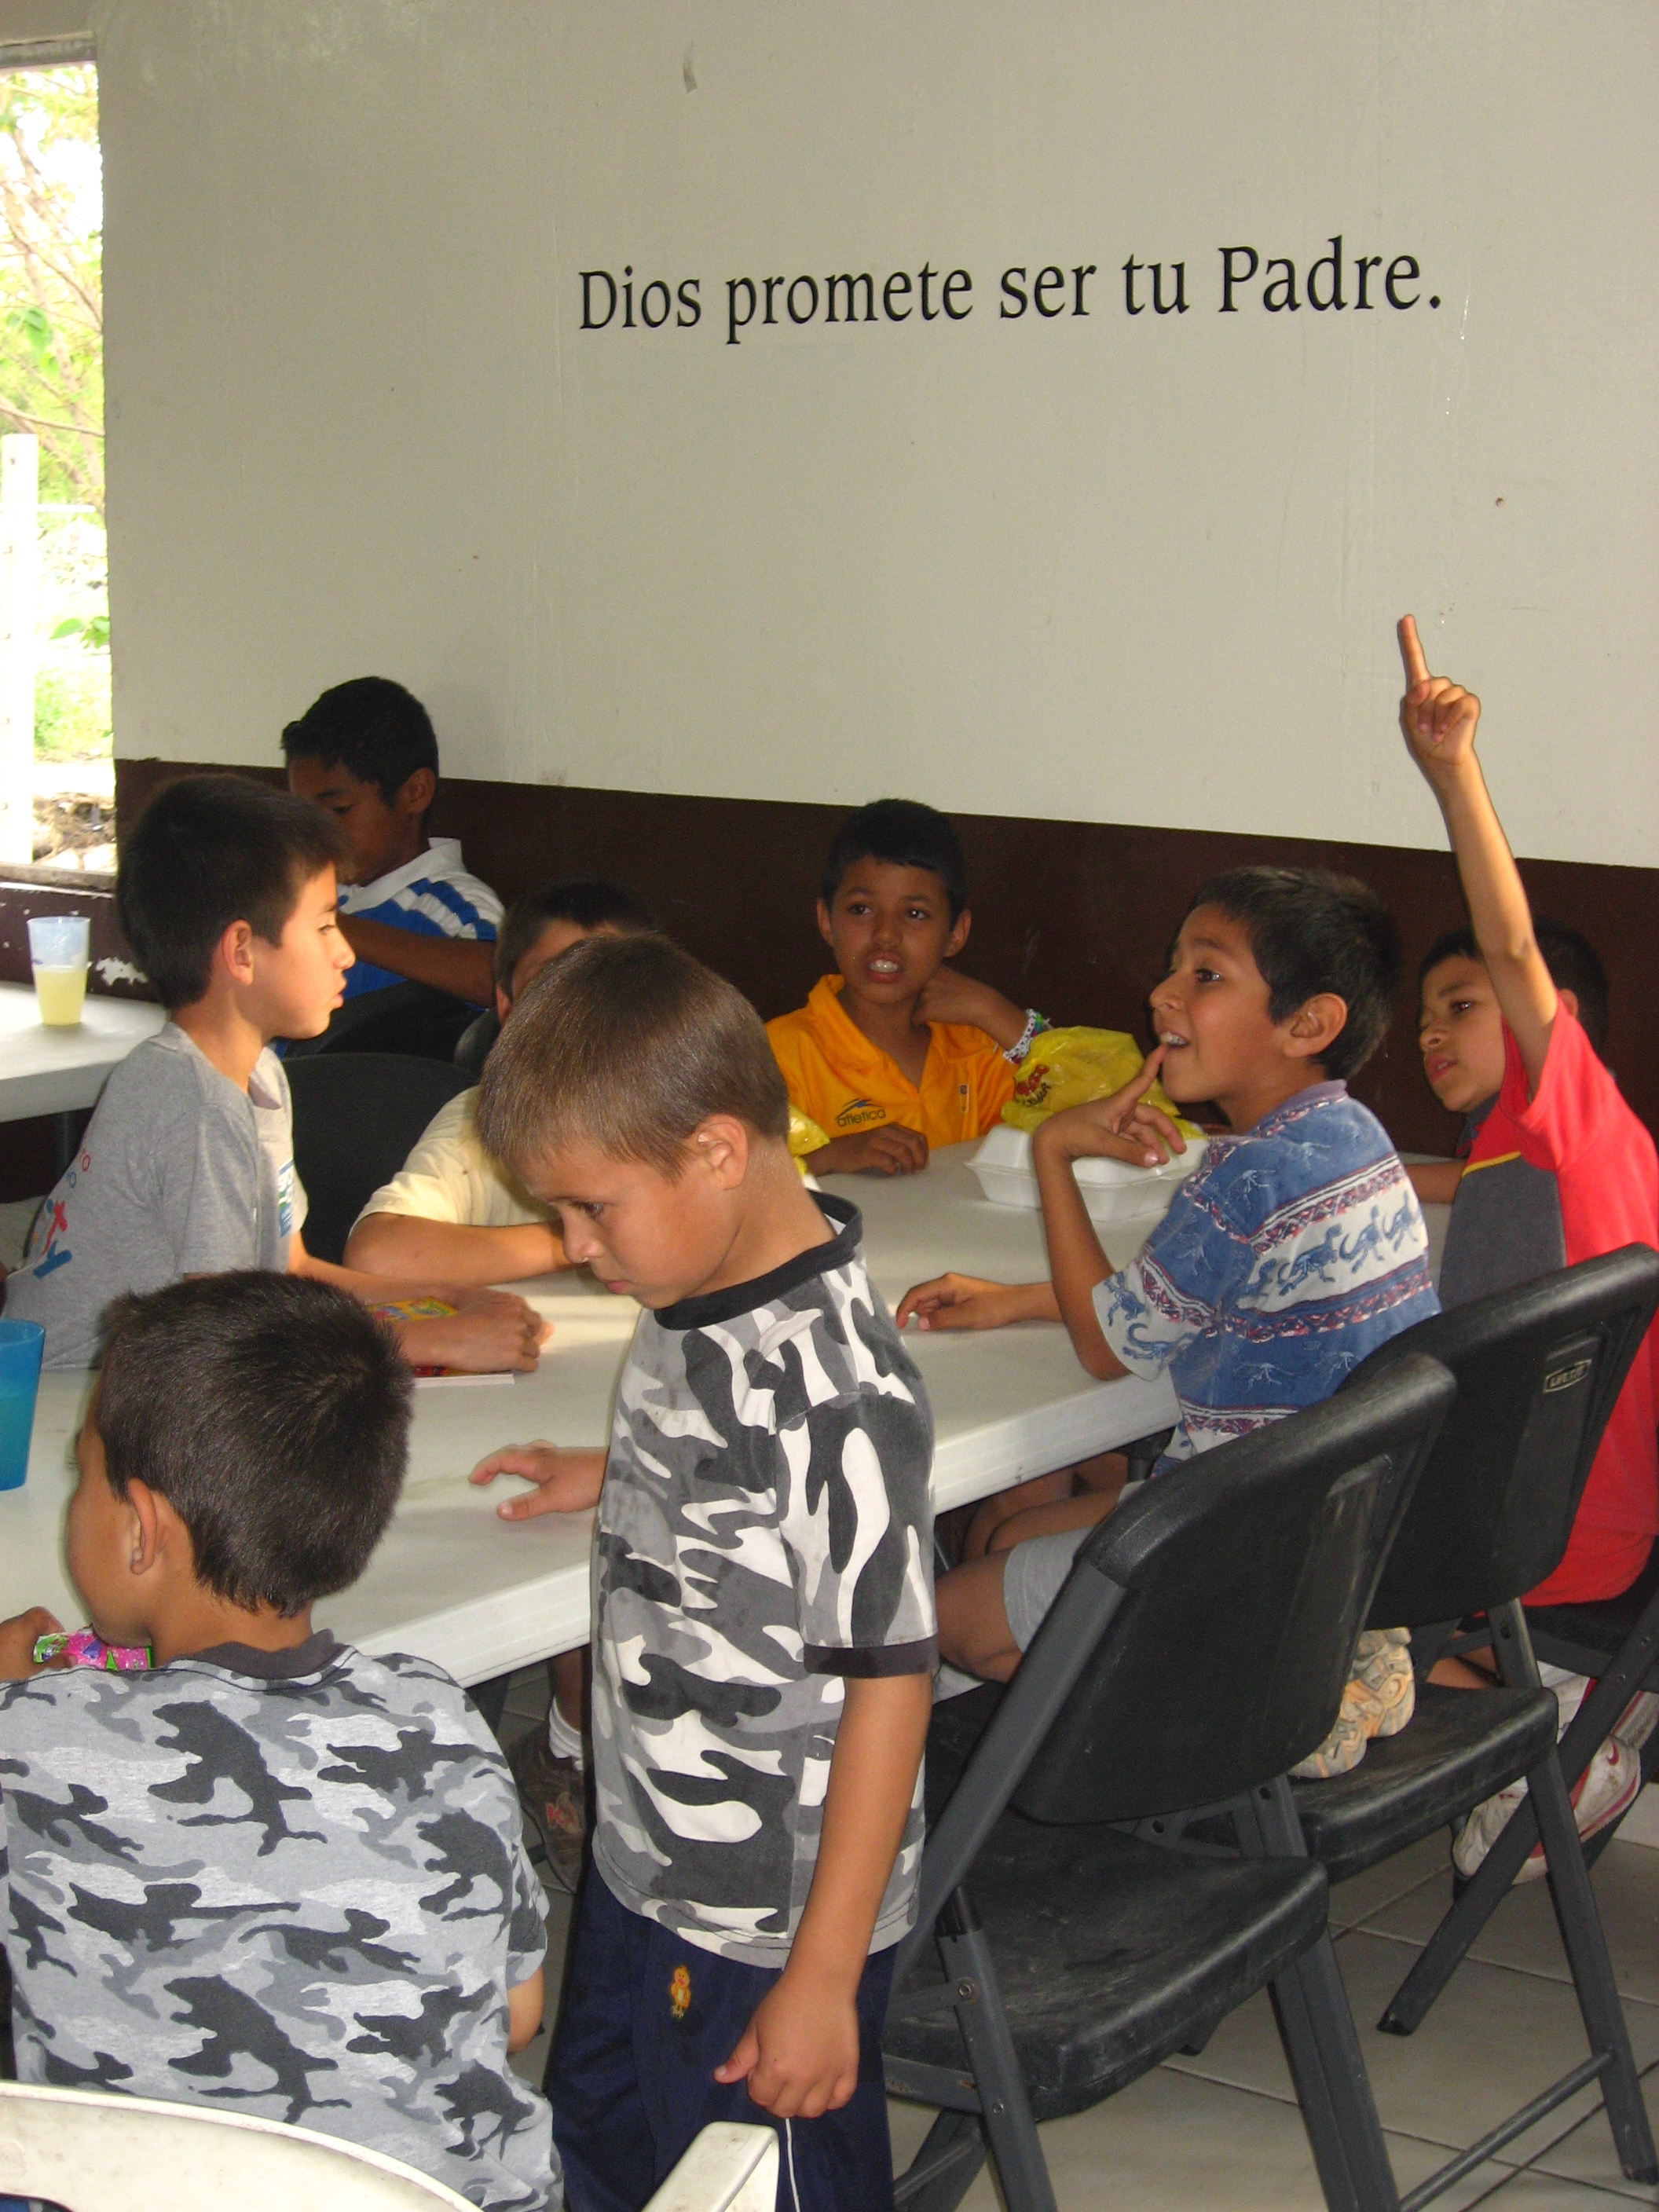 During meal times, the children are reminded of another one of God's promises to orphans found in scripture: God promises to be your Father.